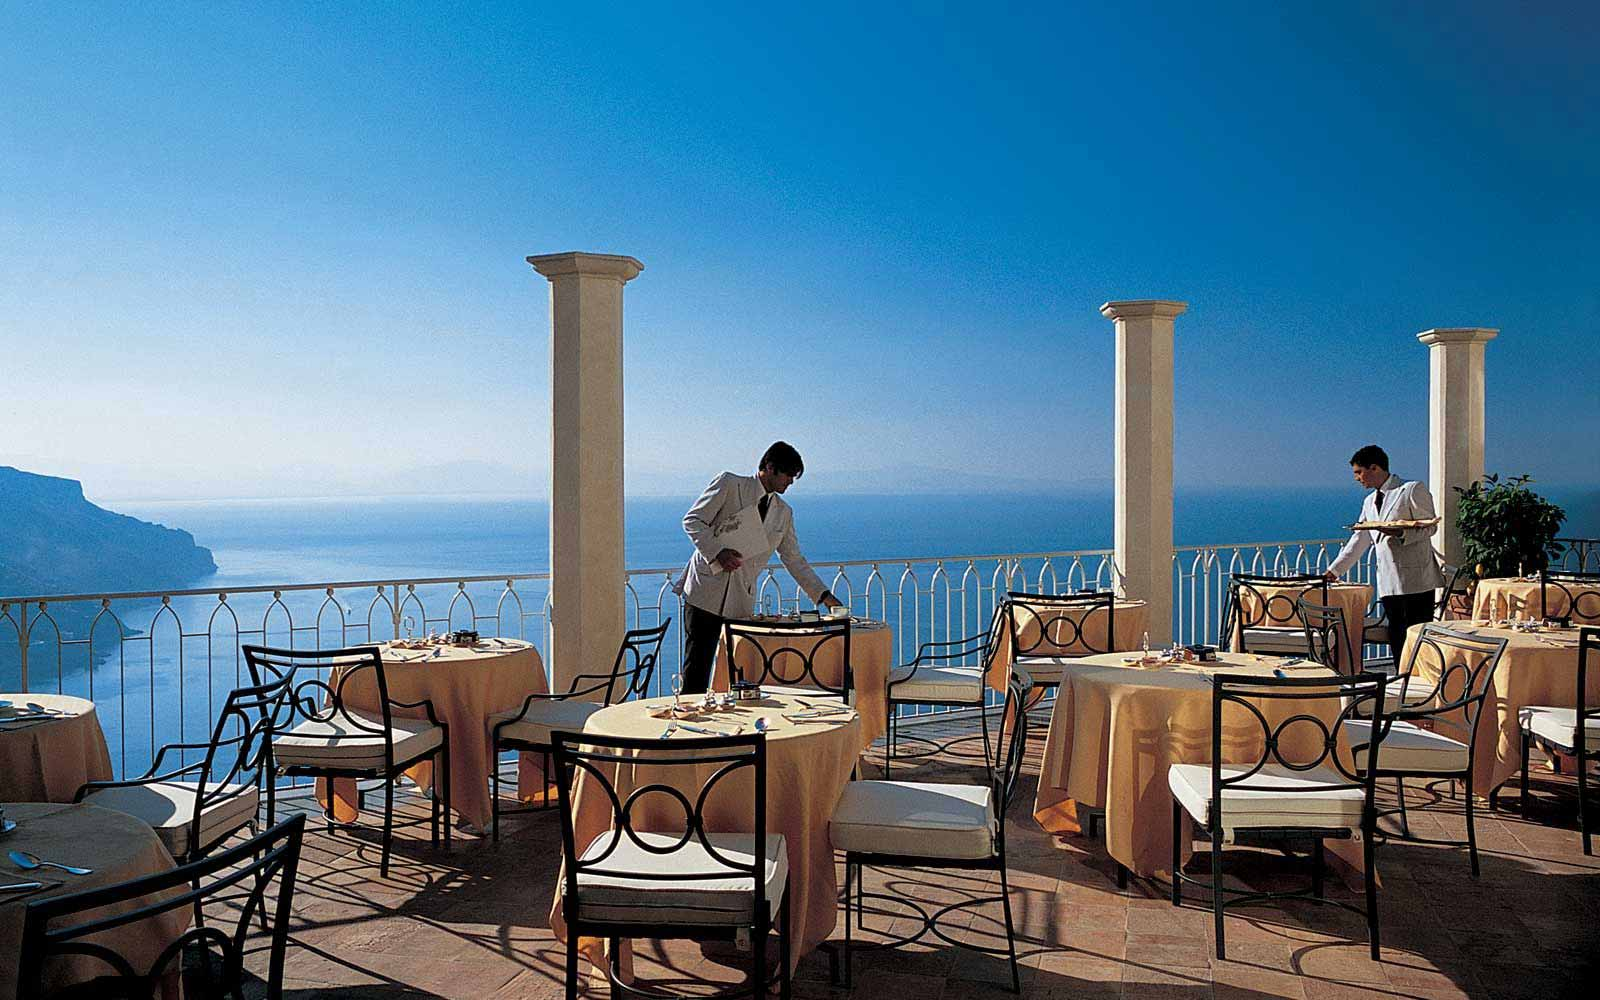 Restaurant at Belmond Hotel Caruso